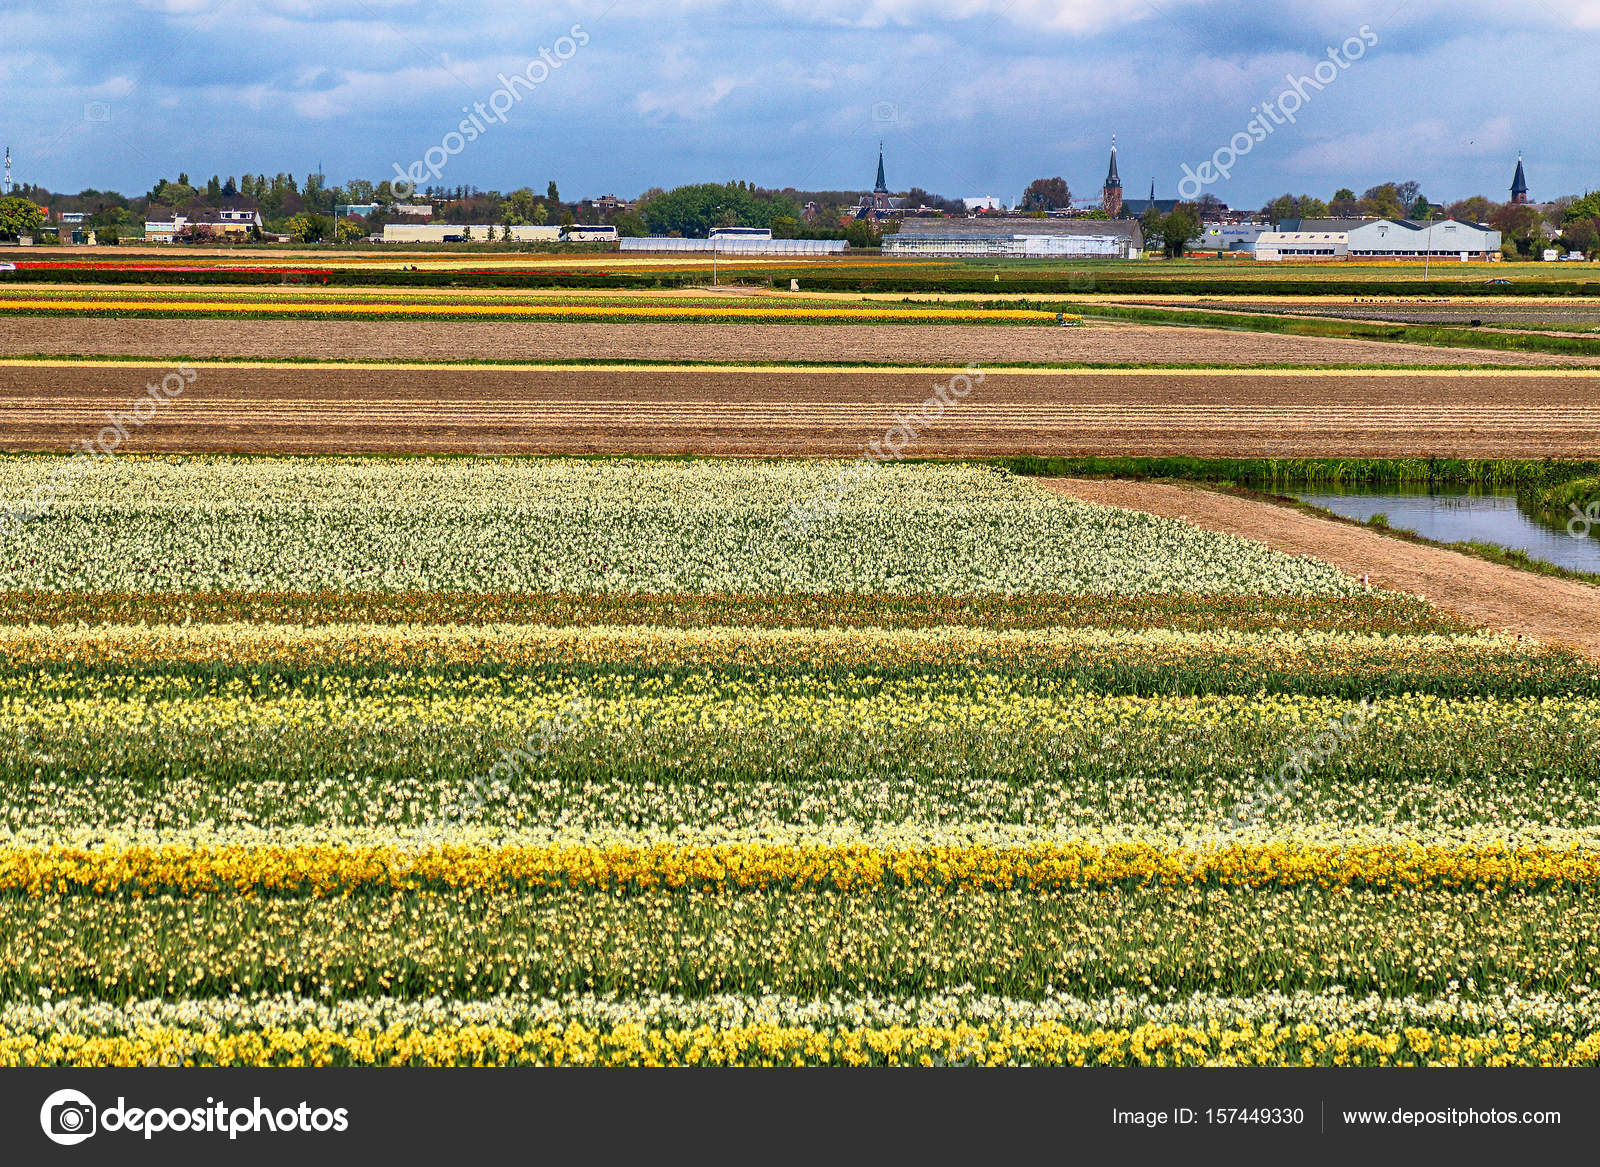 Field Of Tulips And Other Seasonal Spring Flowers Classic Dutch